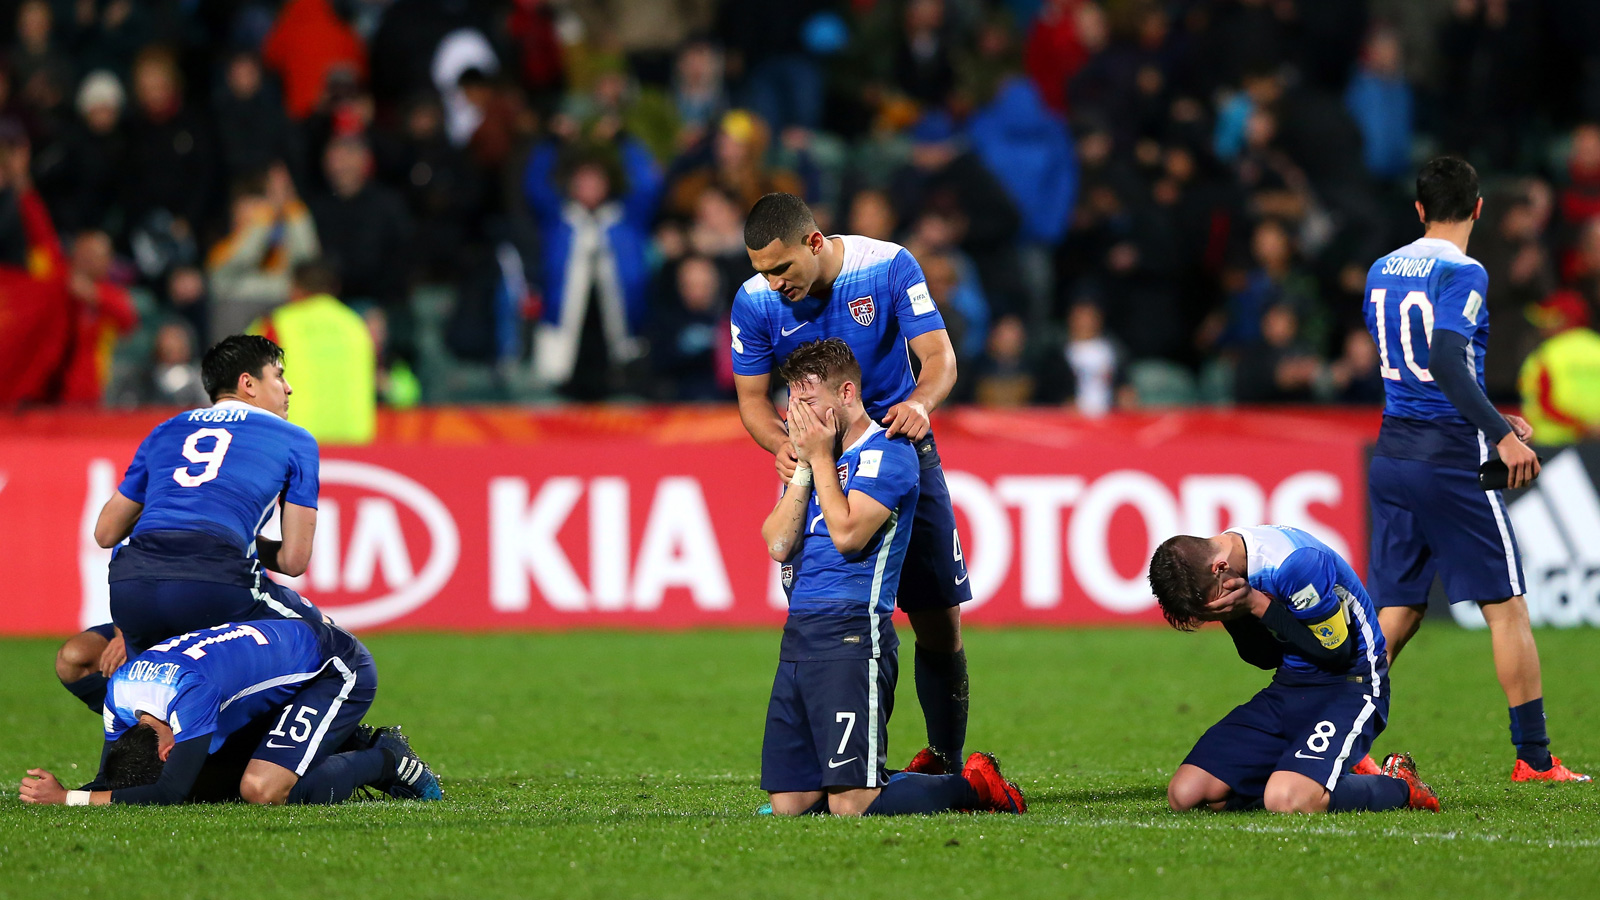 U.S. players' emotions say it all after a gut-wrenching loss to Serbia in penalty kicks at the U-20 World Cup. After a 0-0 draw, the Americans fell 6-5 in PKs, despite Zack Steffen's two saves in sudden death.